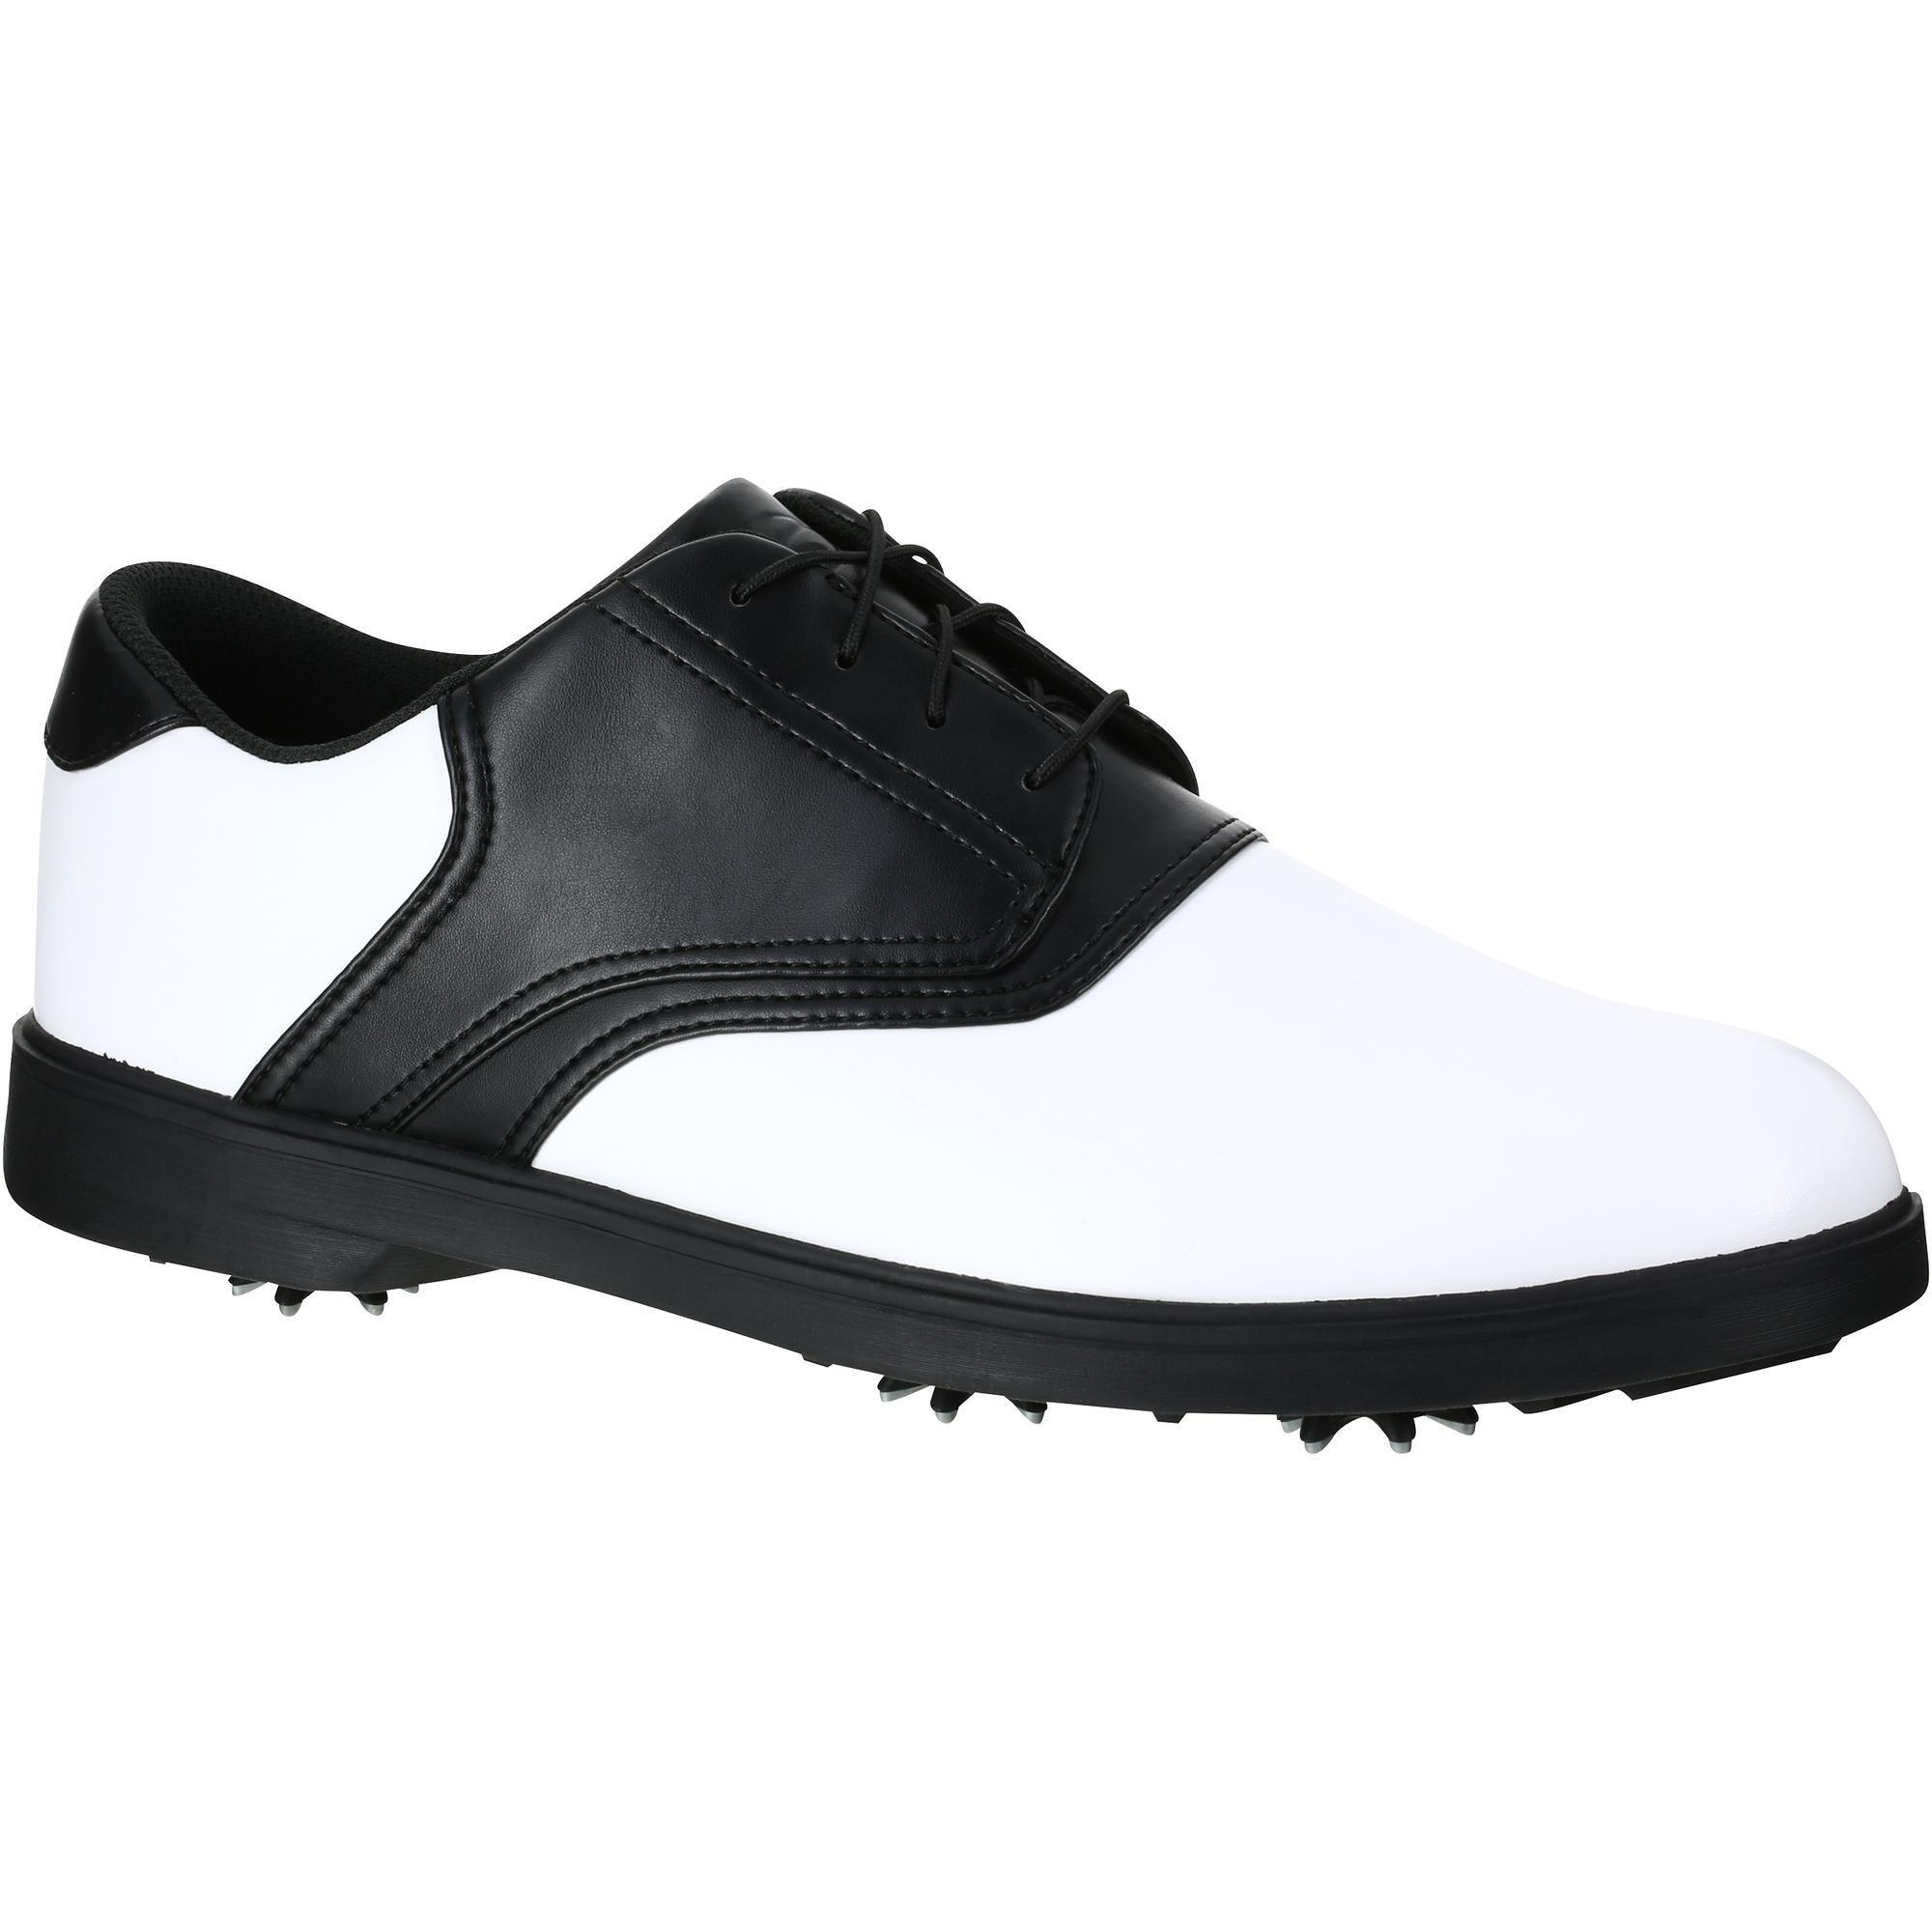 chaussures golf homme spike 500 blanches noires inesis golf. Black Bedroom Furniture Sets. Home Design Ideas